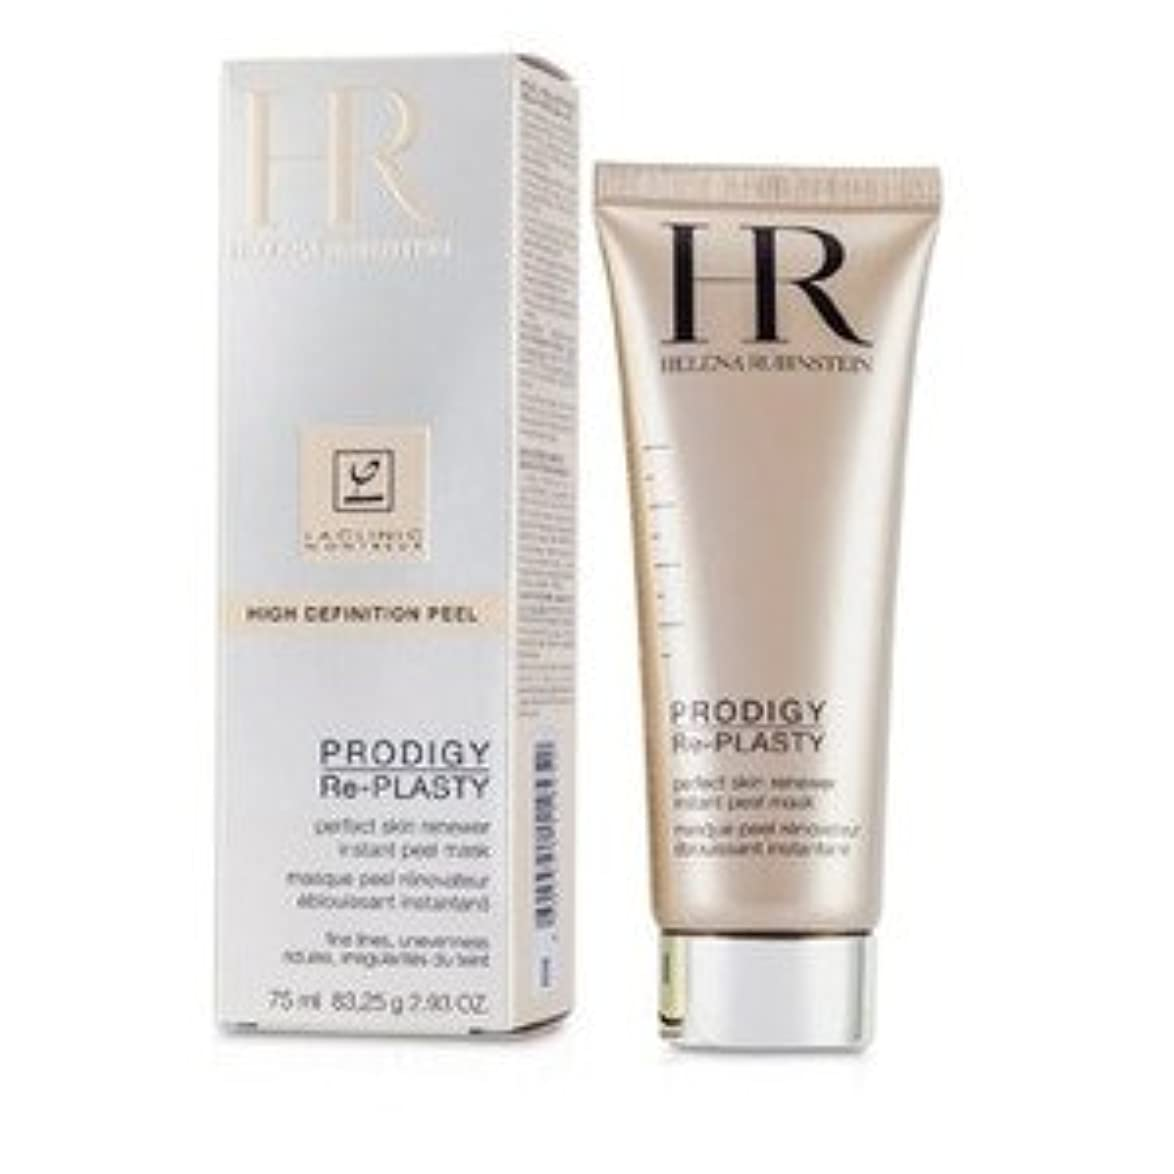 農場水っぽい改善するHelena Rubinstein(ヘレナ?ルビンスタイン) Prodigy Re-Plasty High Definition Peel Perfect Skin Renewer Instant Peel Mask 75ml...